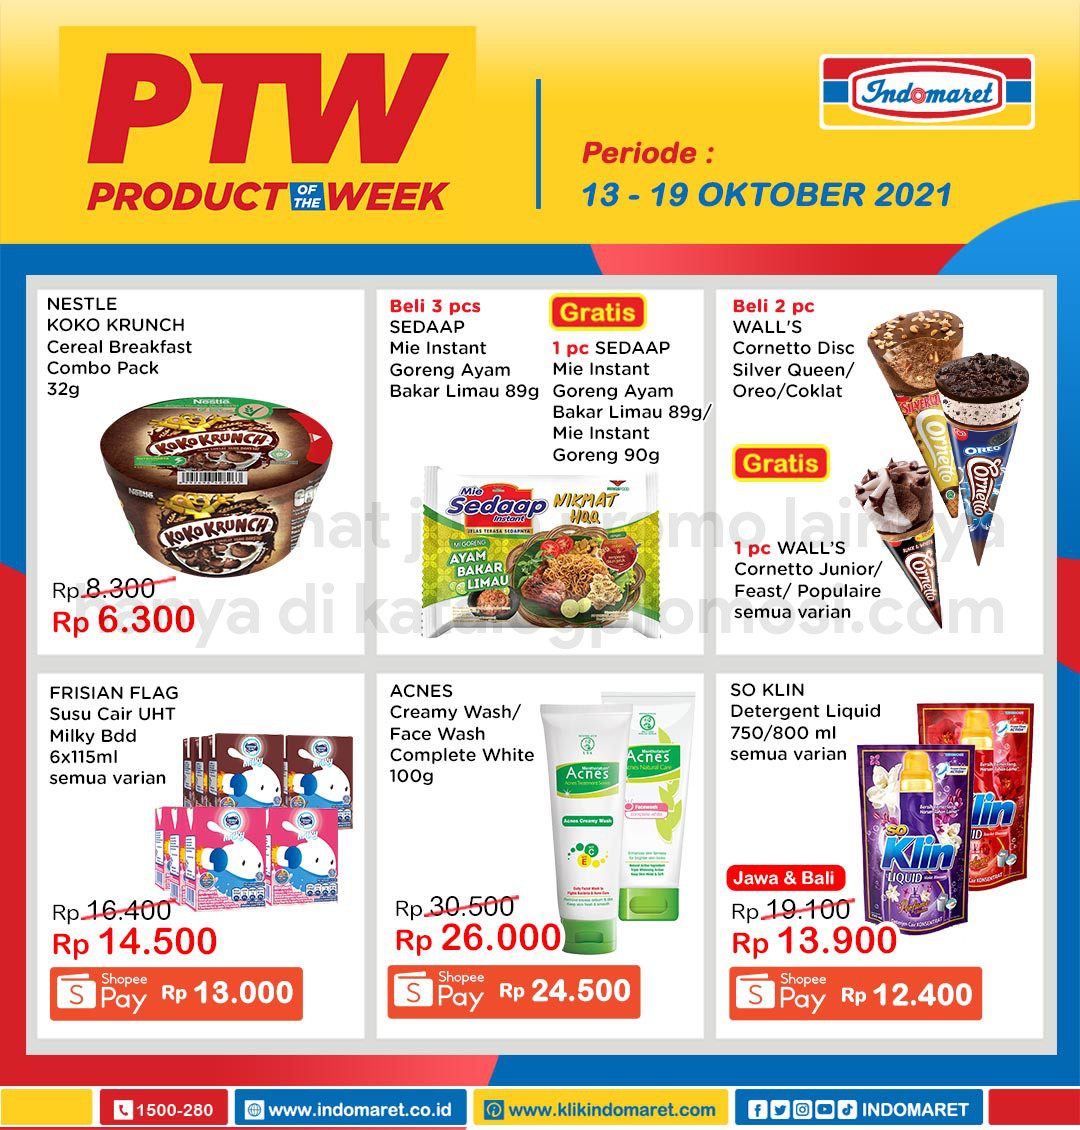 INDOMARET Promo PTW - PRODUCT of The Week periode 13-19 Oktober 2021